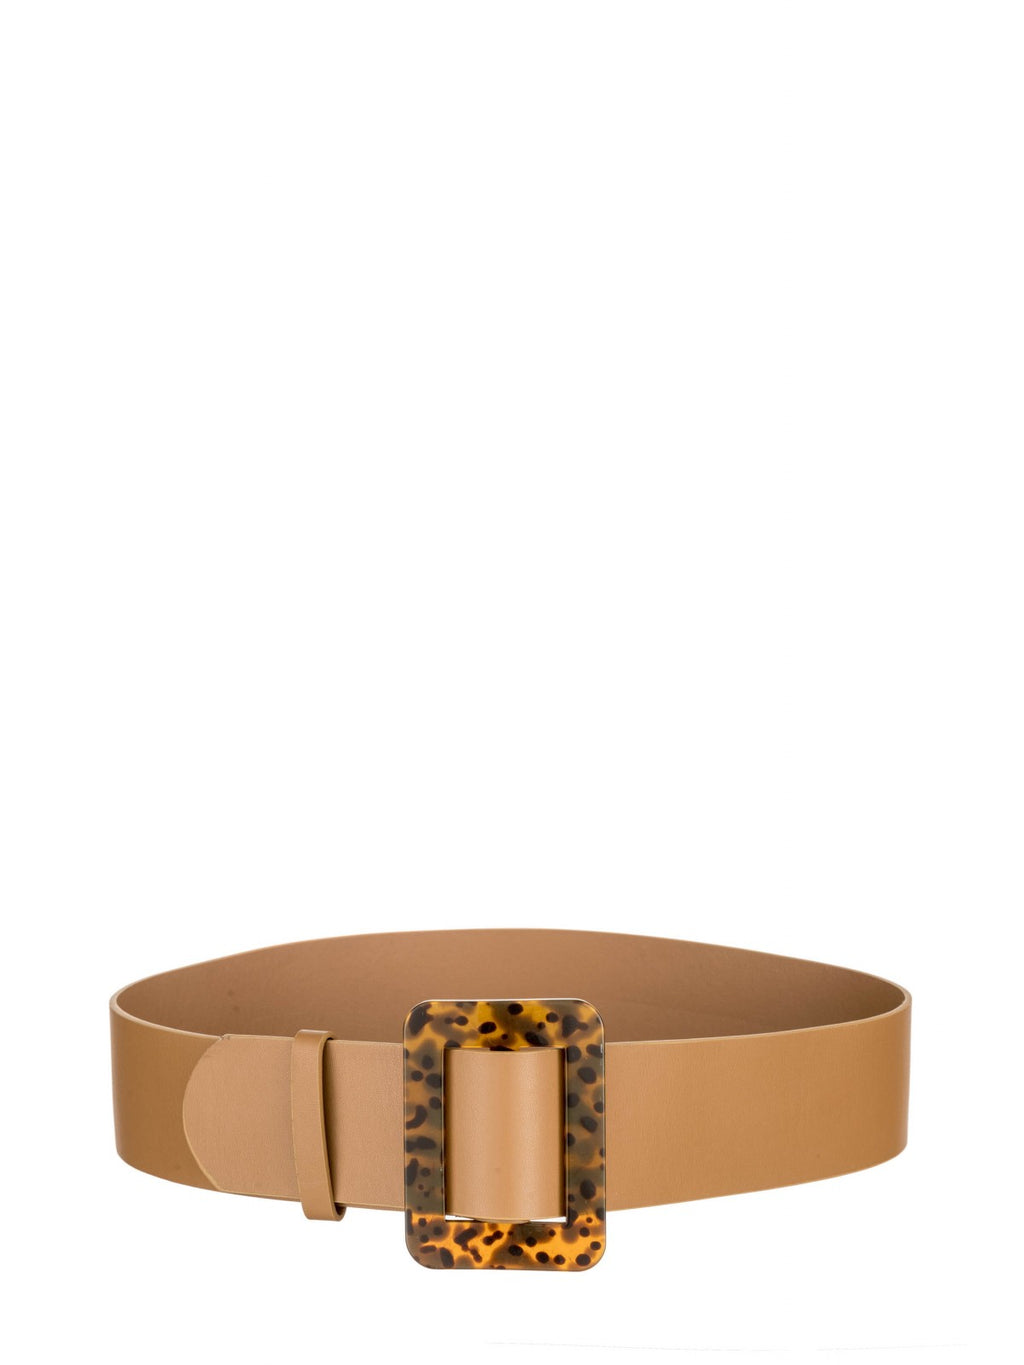 Tan belt with Square Tortoise Buckle